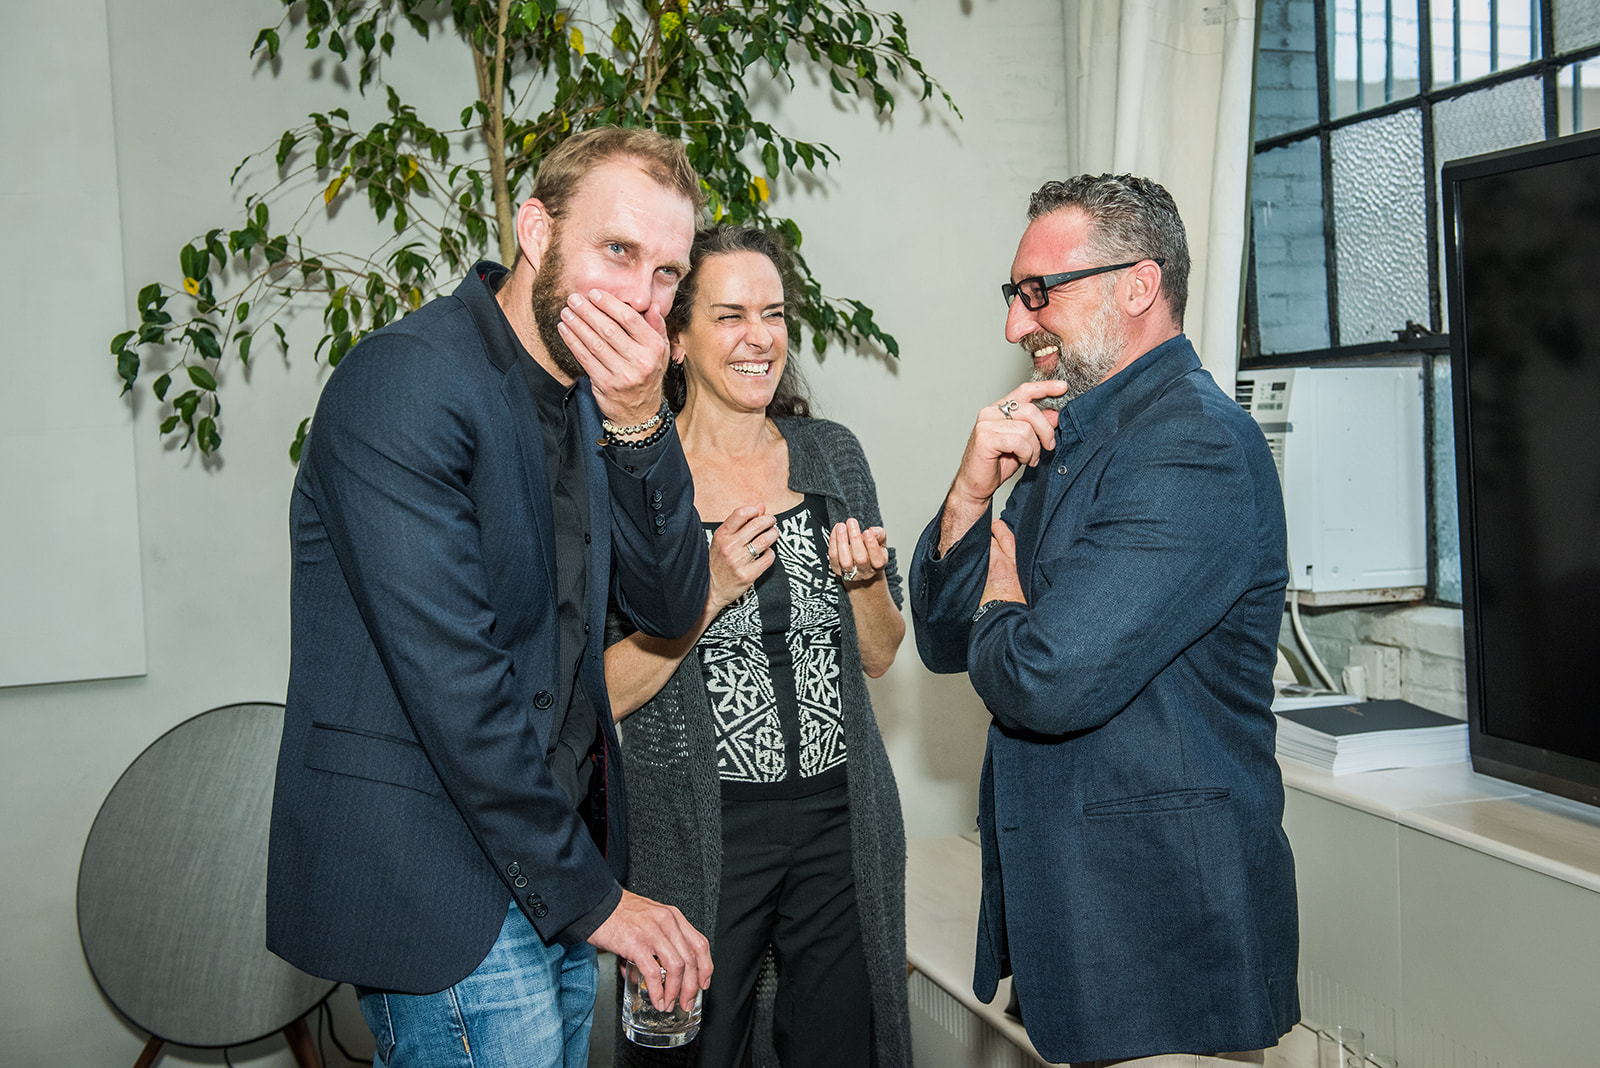 A good time was had by all! Christopher Courts, Joan Barton and Dan Turner share a suspiciously naughty laugh.